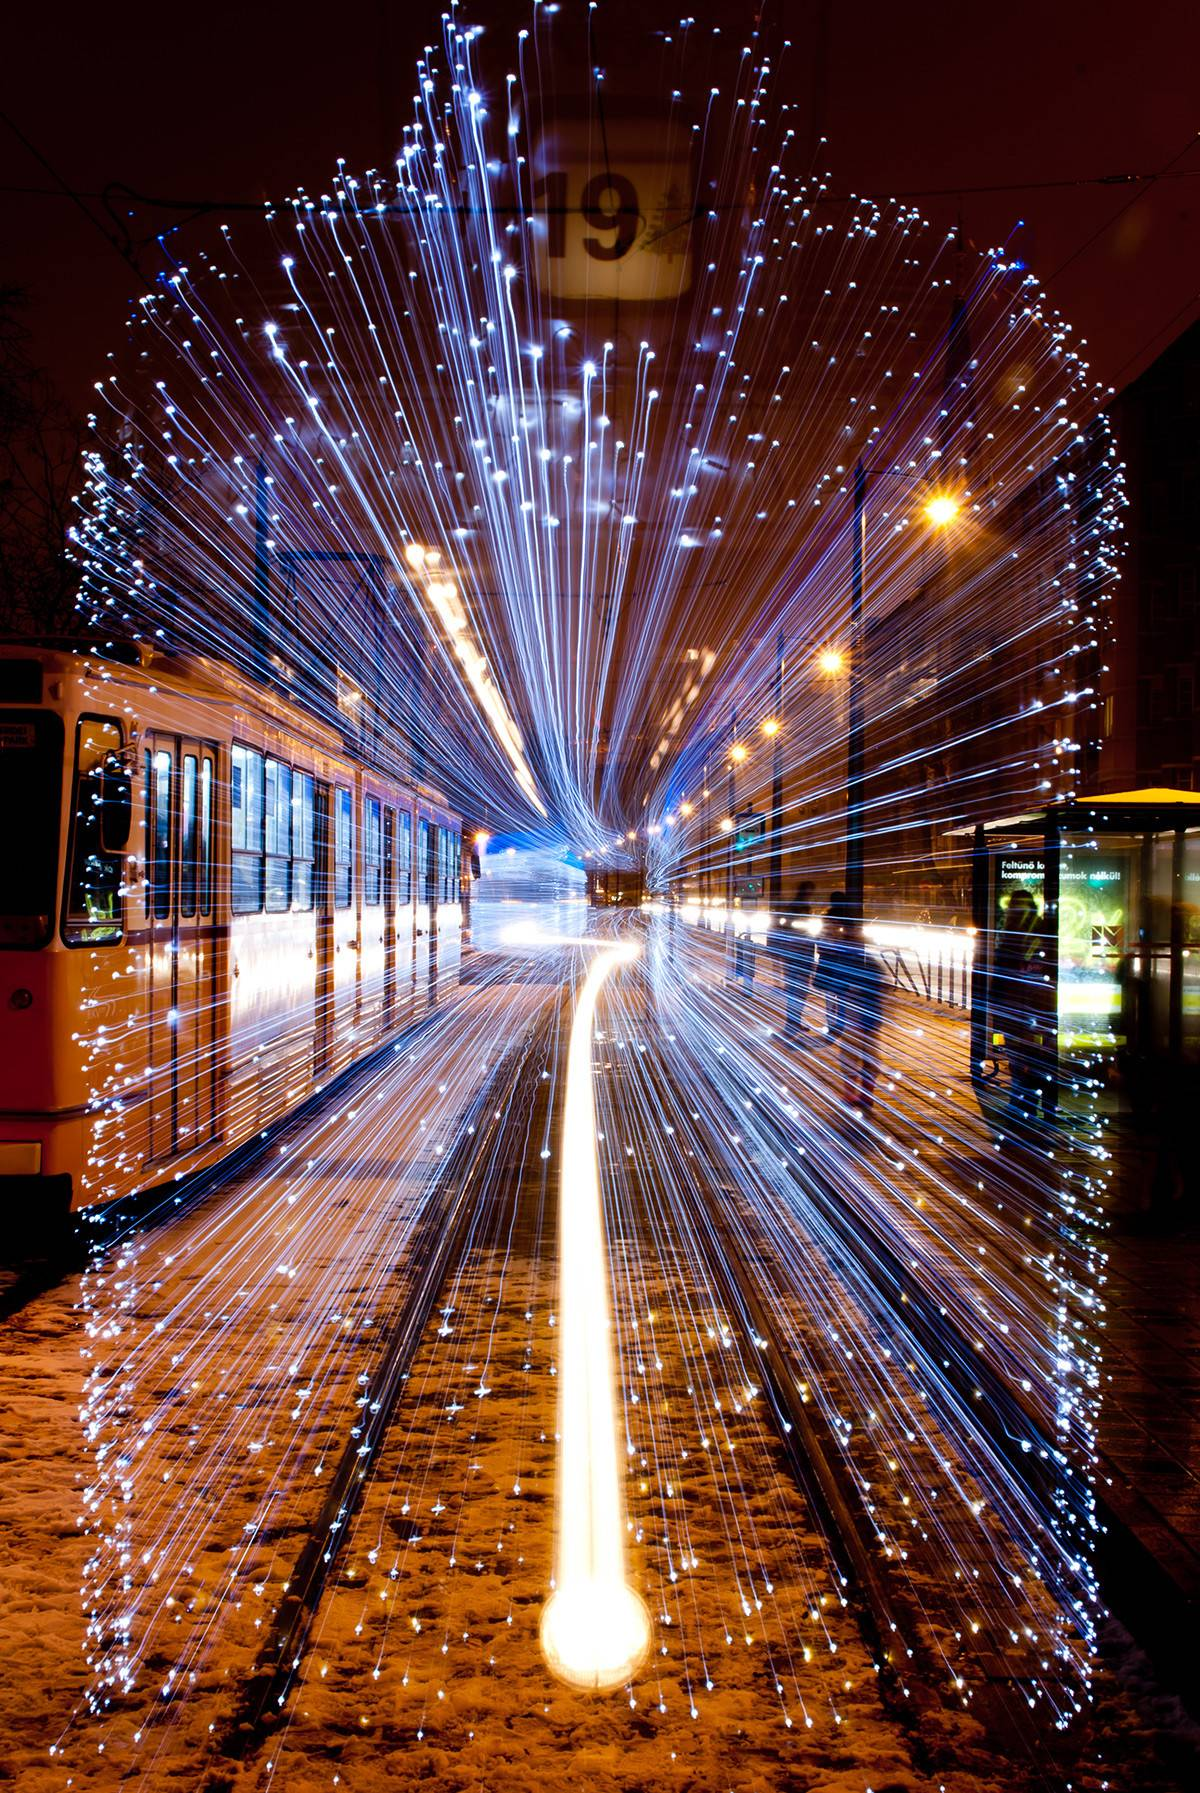 Long exposure of a departing Tram in Budapest covered in 30,000 LED lights